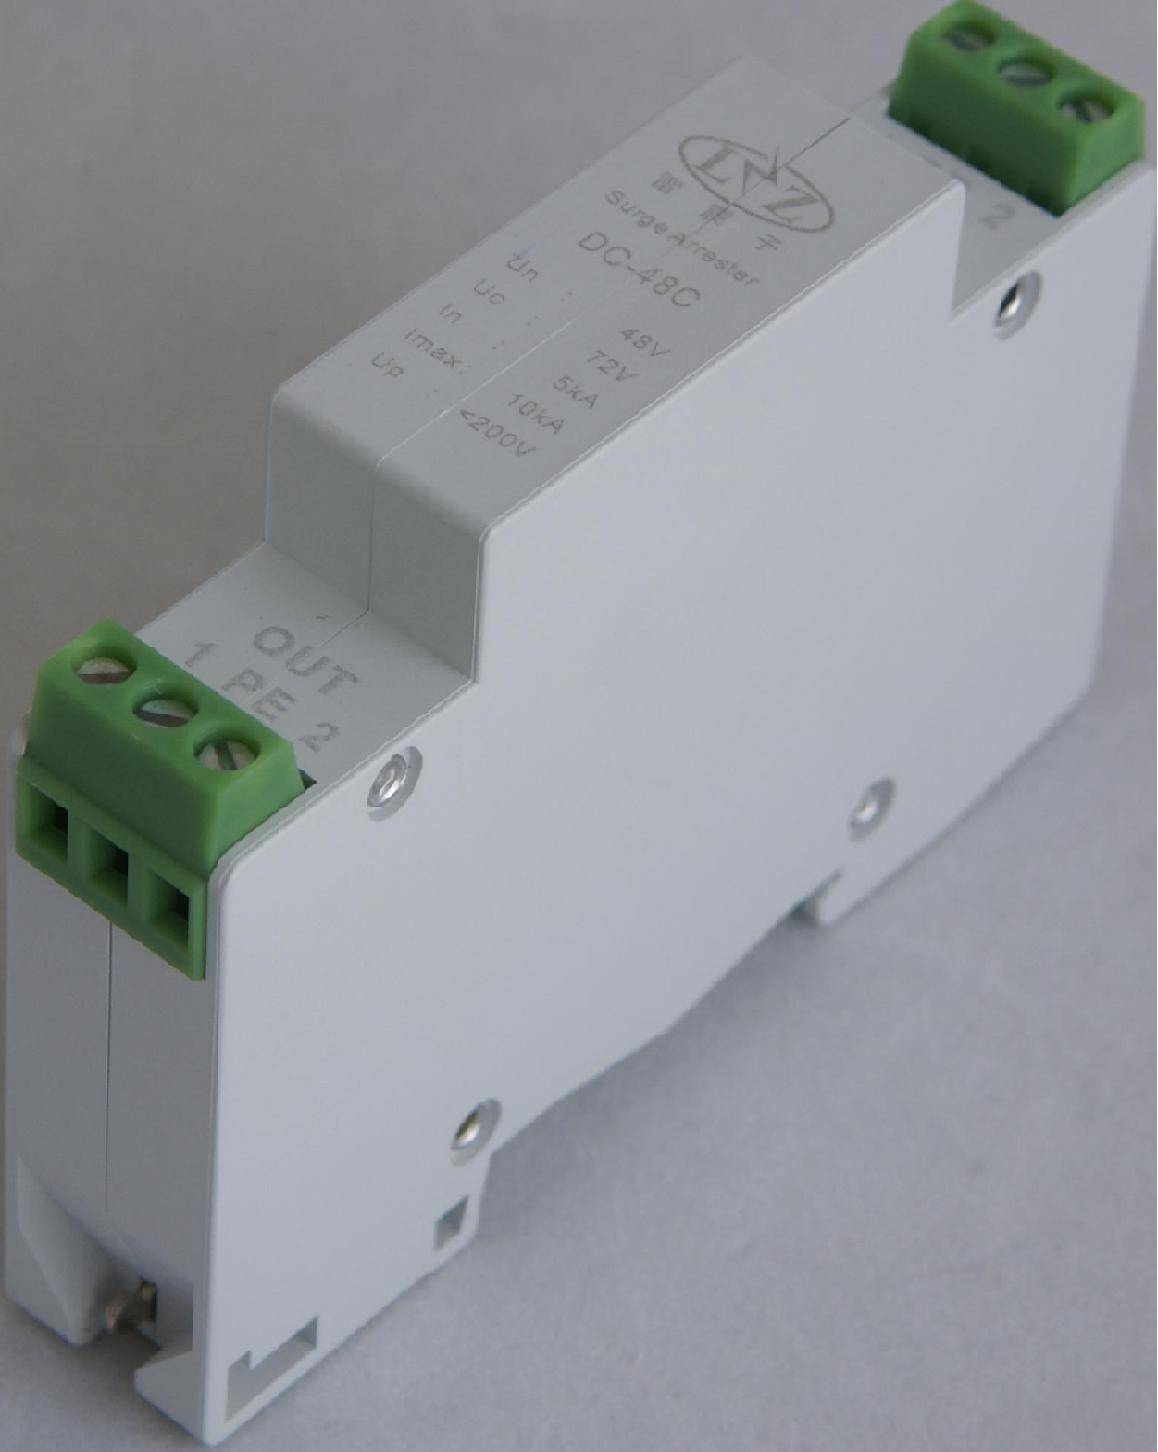 DC-C series 2- wire control signal surge protection device